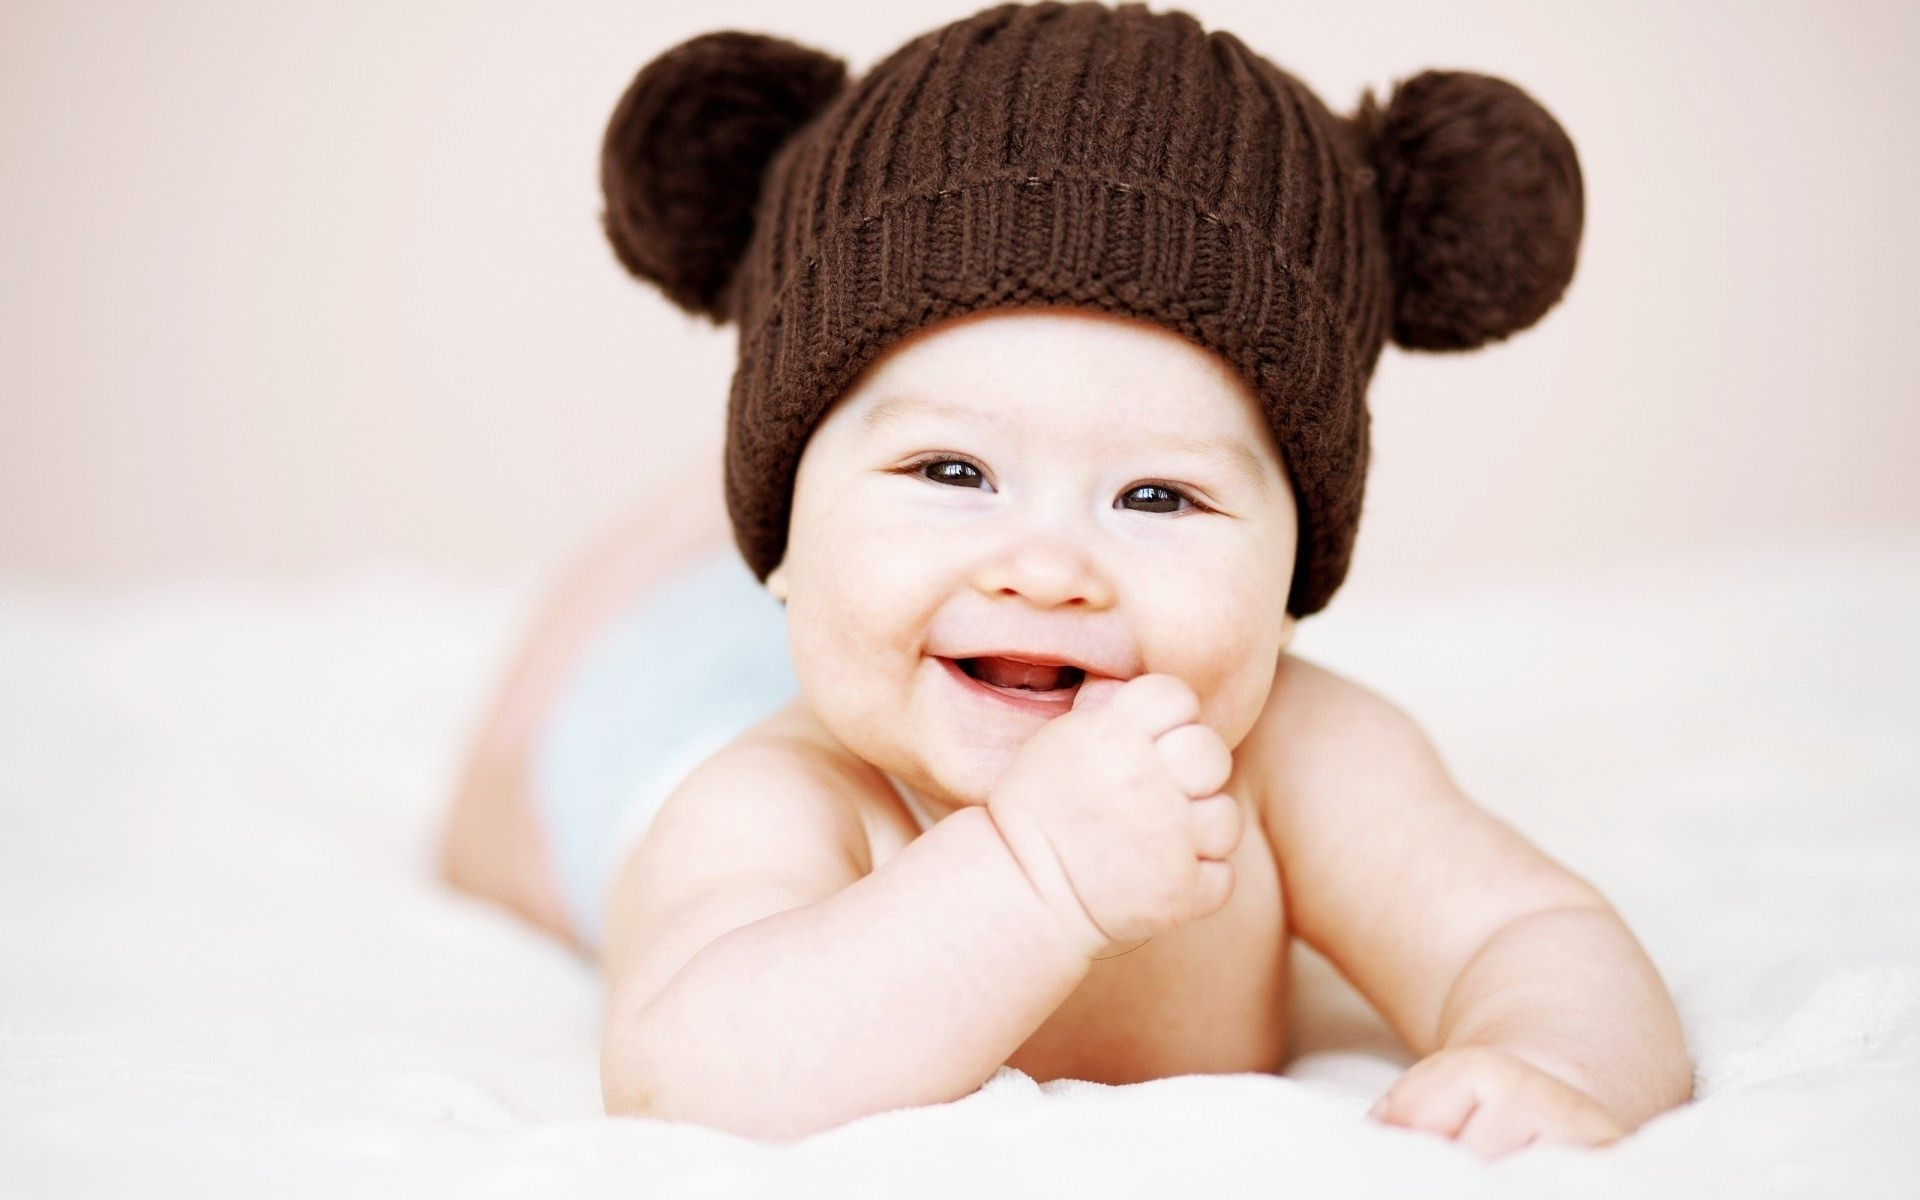 Baby Wallpaper Hd Posted By Michelle Tremblay